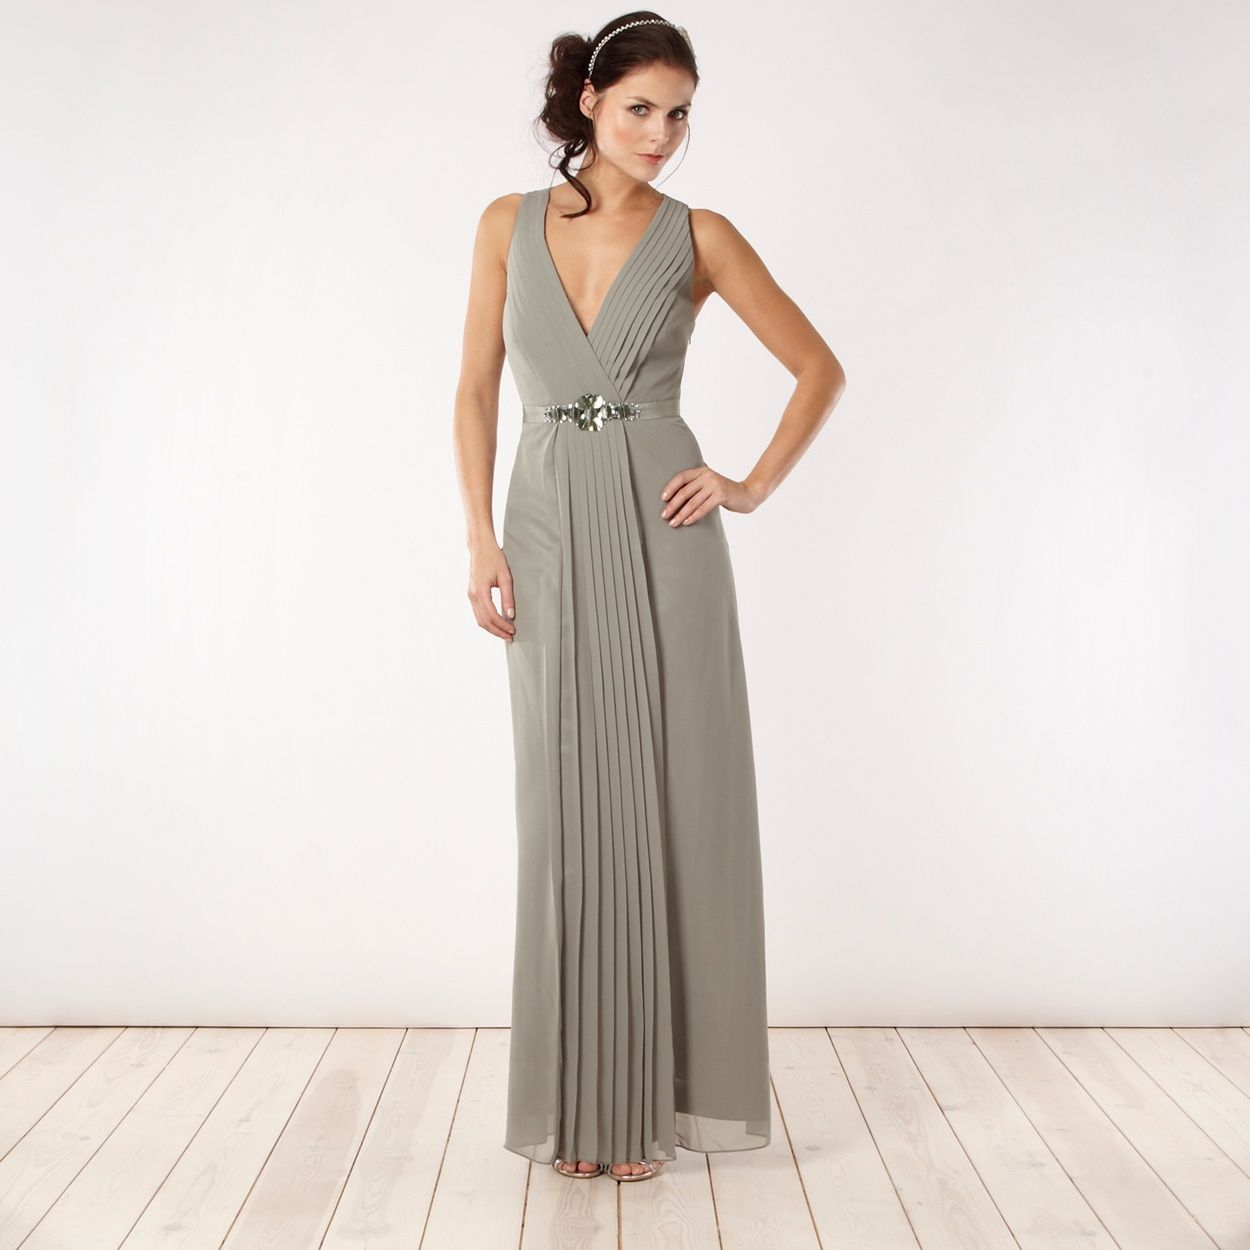 No 1 jenny packham designer light green embellished waist dress 1 jenny packham designer light green embellished waist dress at debenhams mobile bridesmaid y possible ombrellifo Gallery